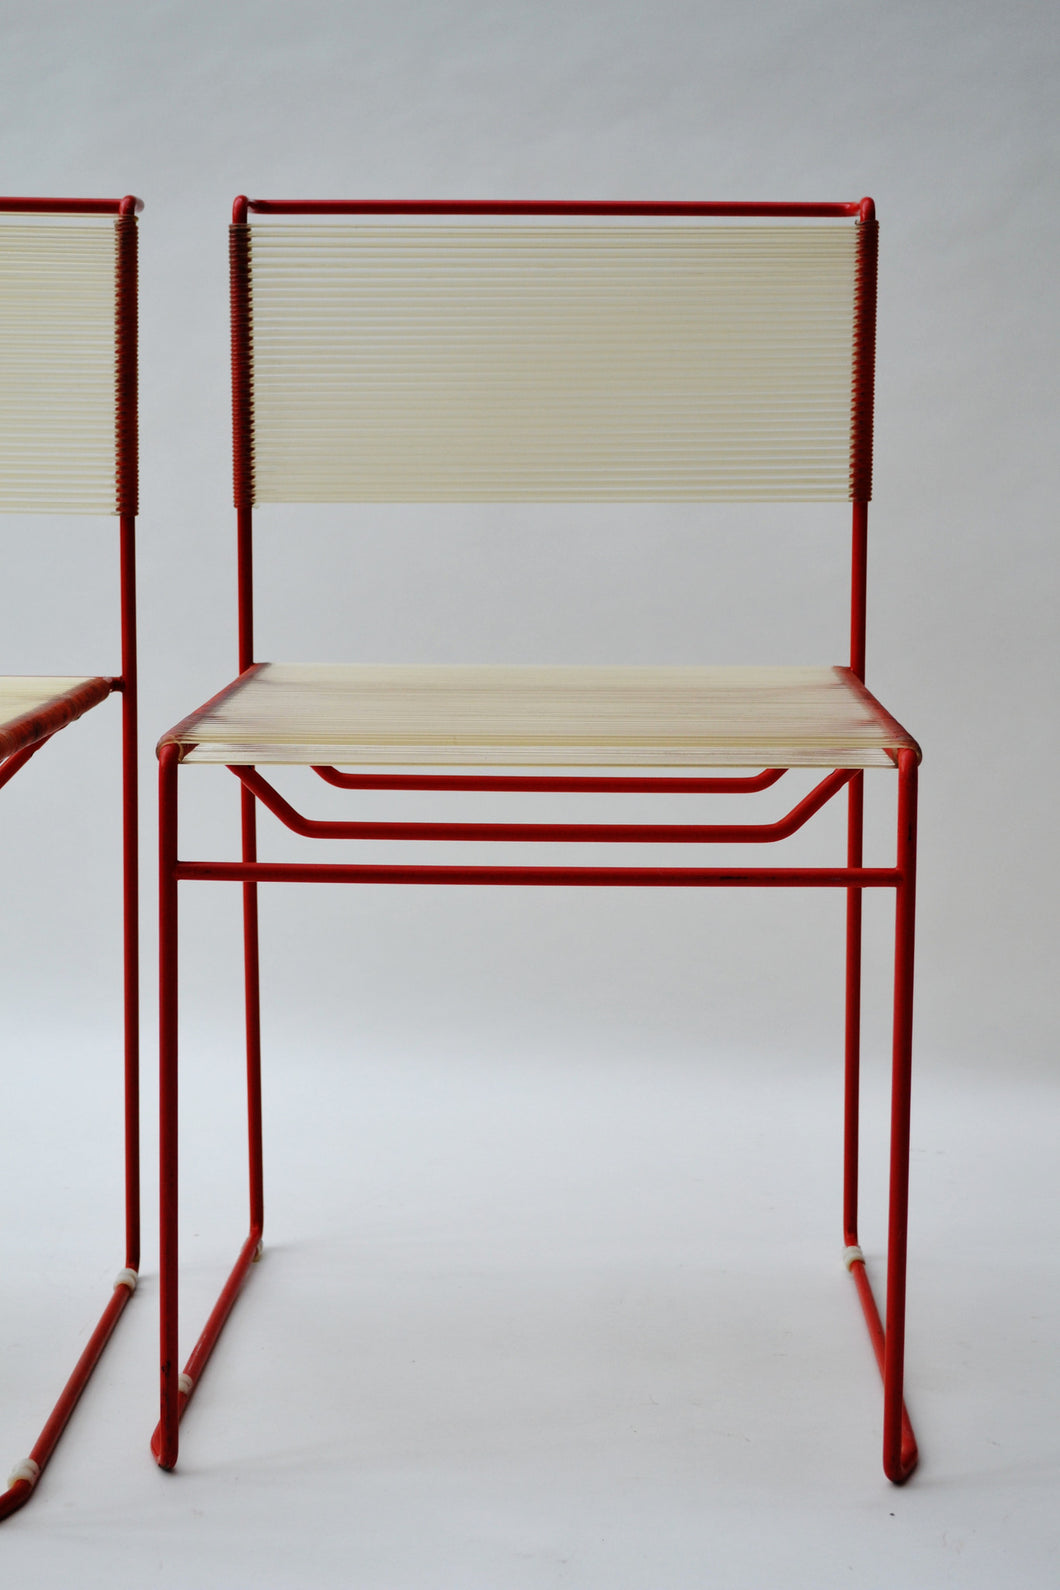 A Pair of Italian FlyLine Chairs - Mid Century Modern 1970's - SOLD